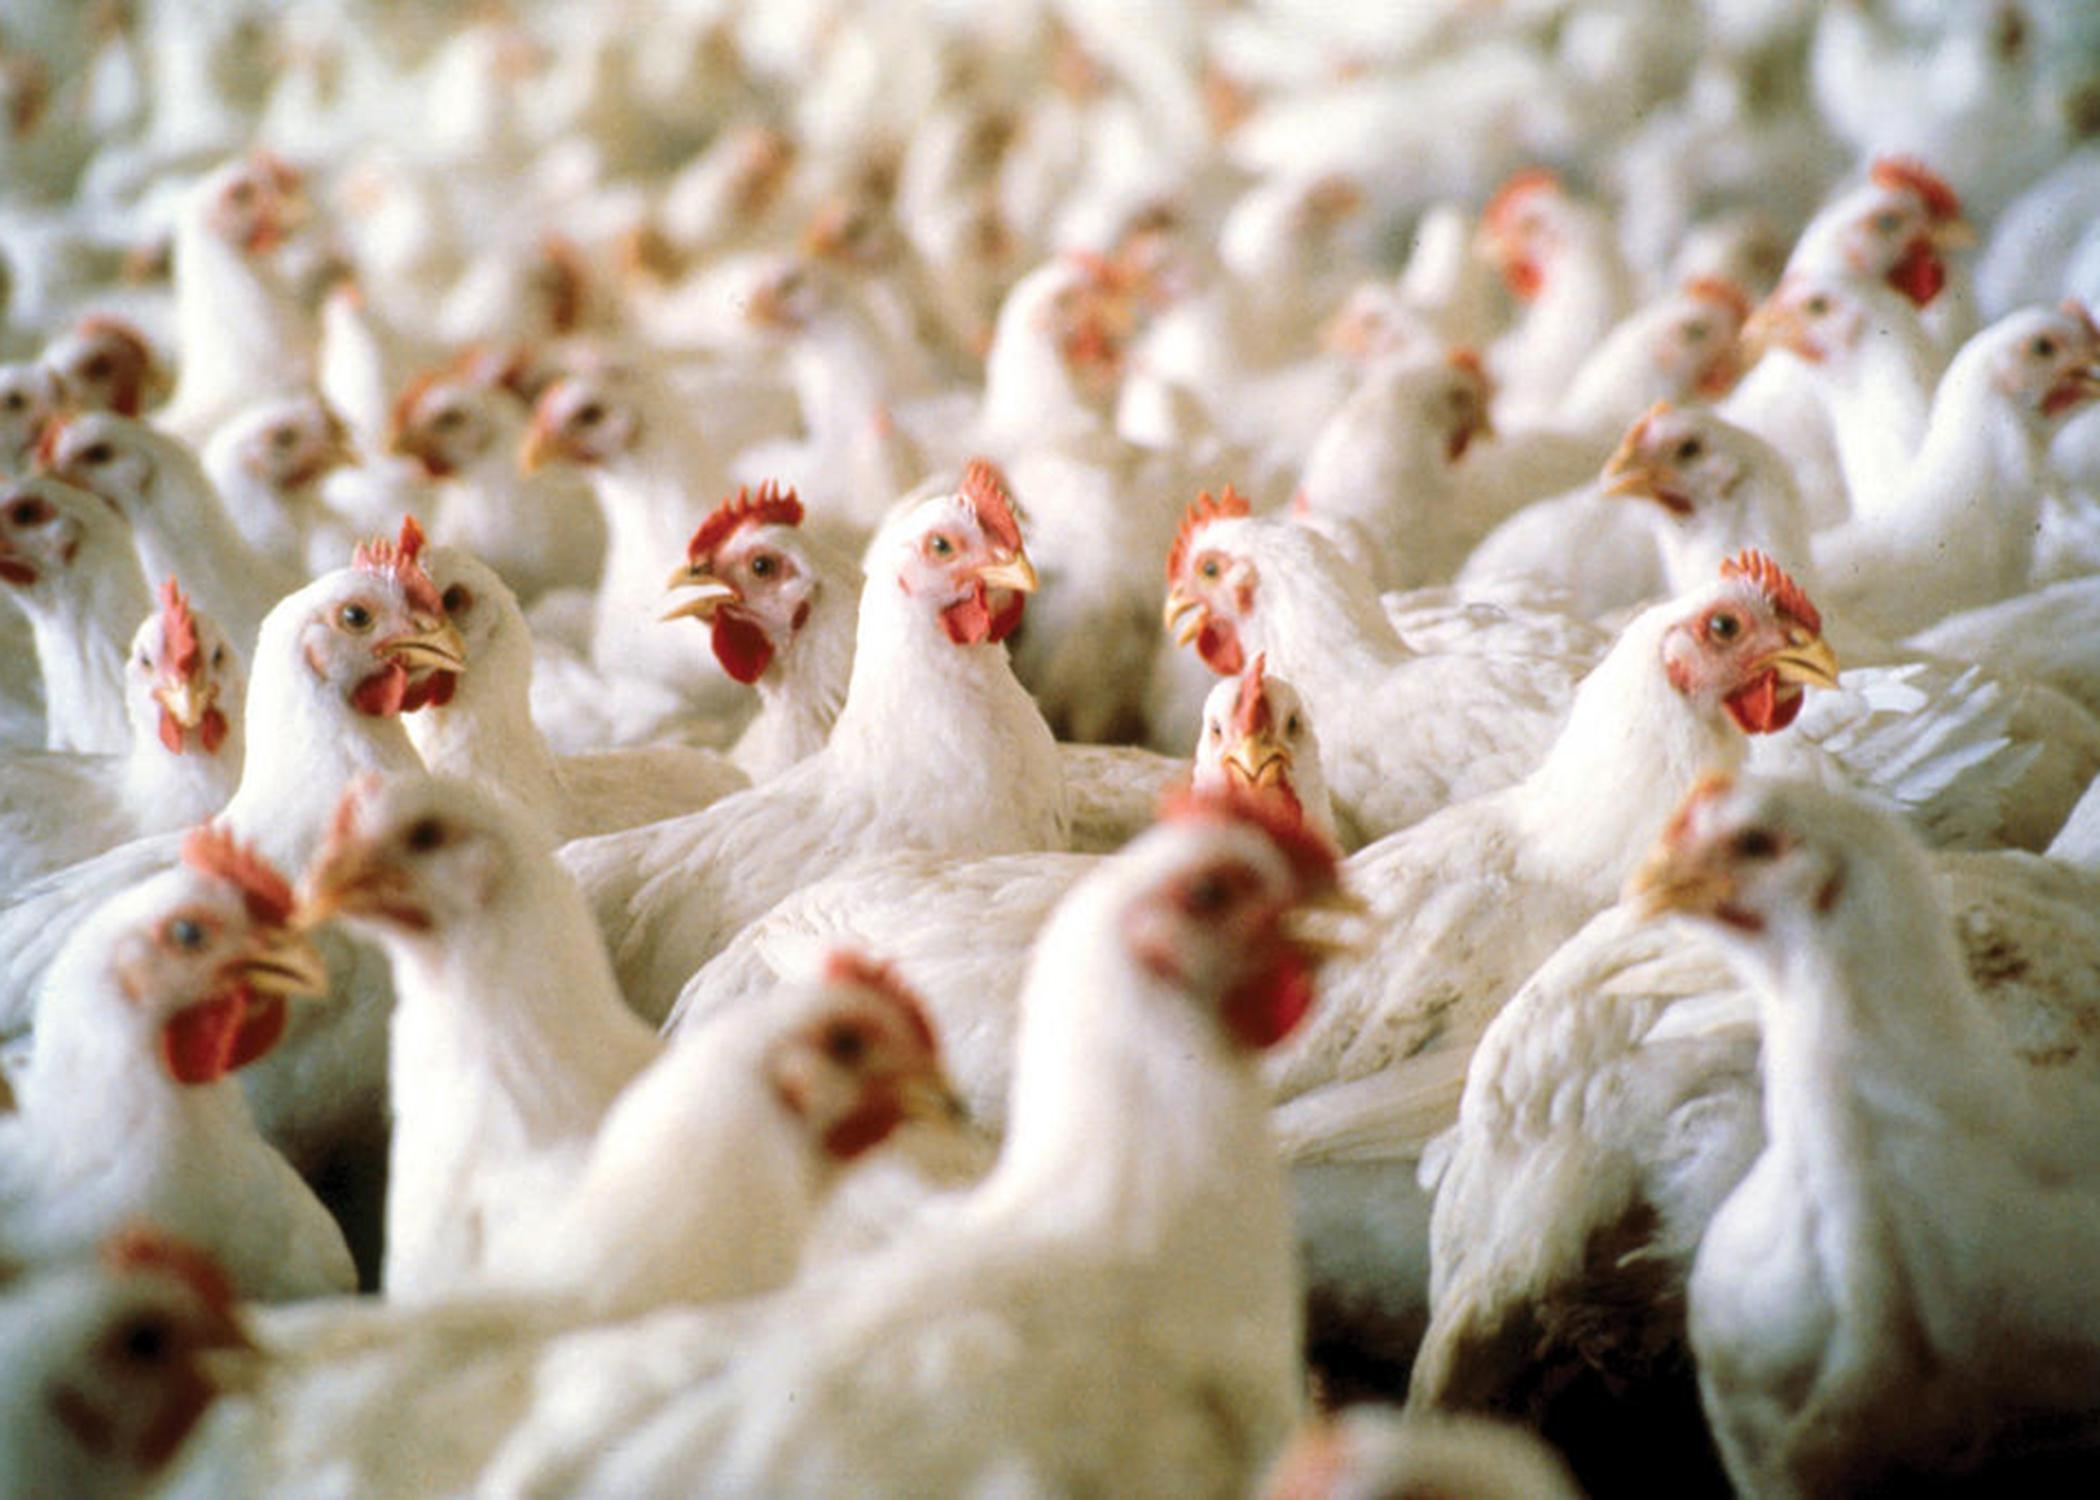 Mississippi's poultry industry ended the year with a preliminary estimated value of $2.5 billion, holding on to the top spot among agricultural commodities in the state for 2012. Broiler values saw a 7 percent increase from 2011, while estimated egg and chicken values remained level. (MSU Ag Communications/file photo